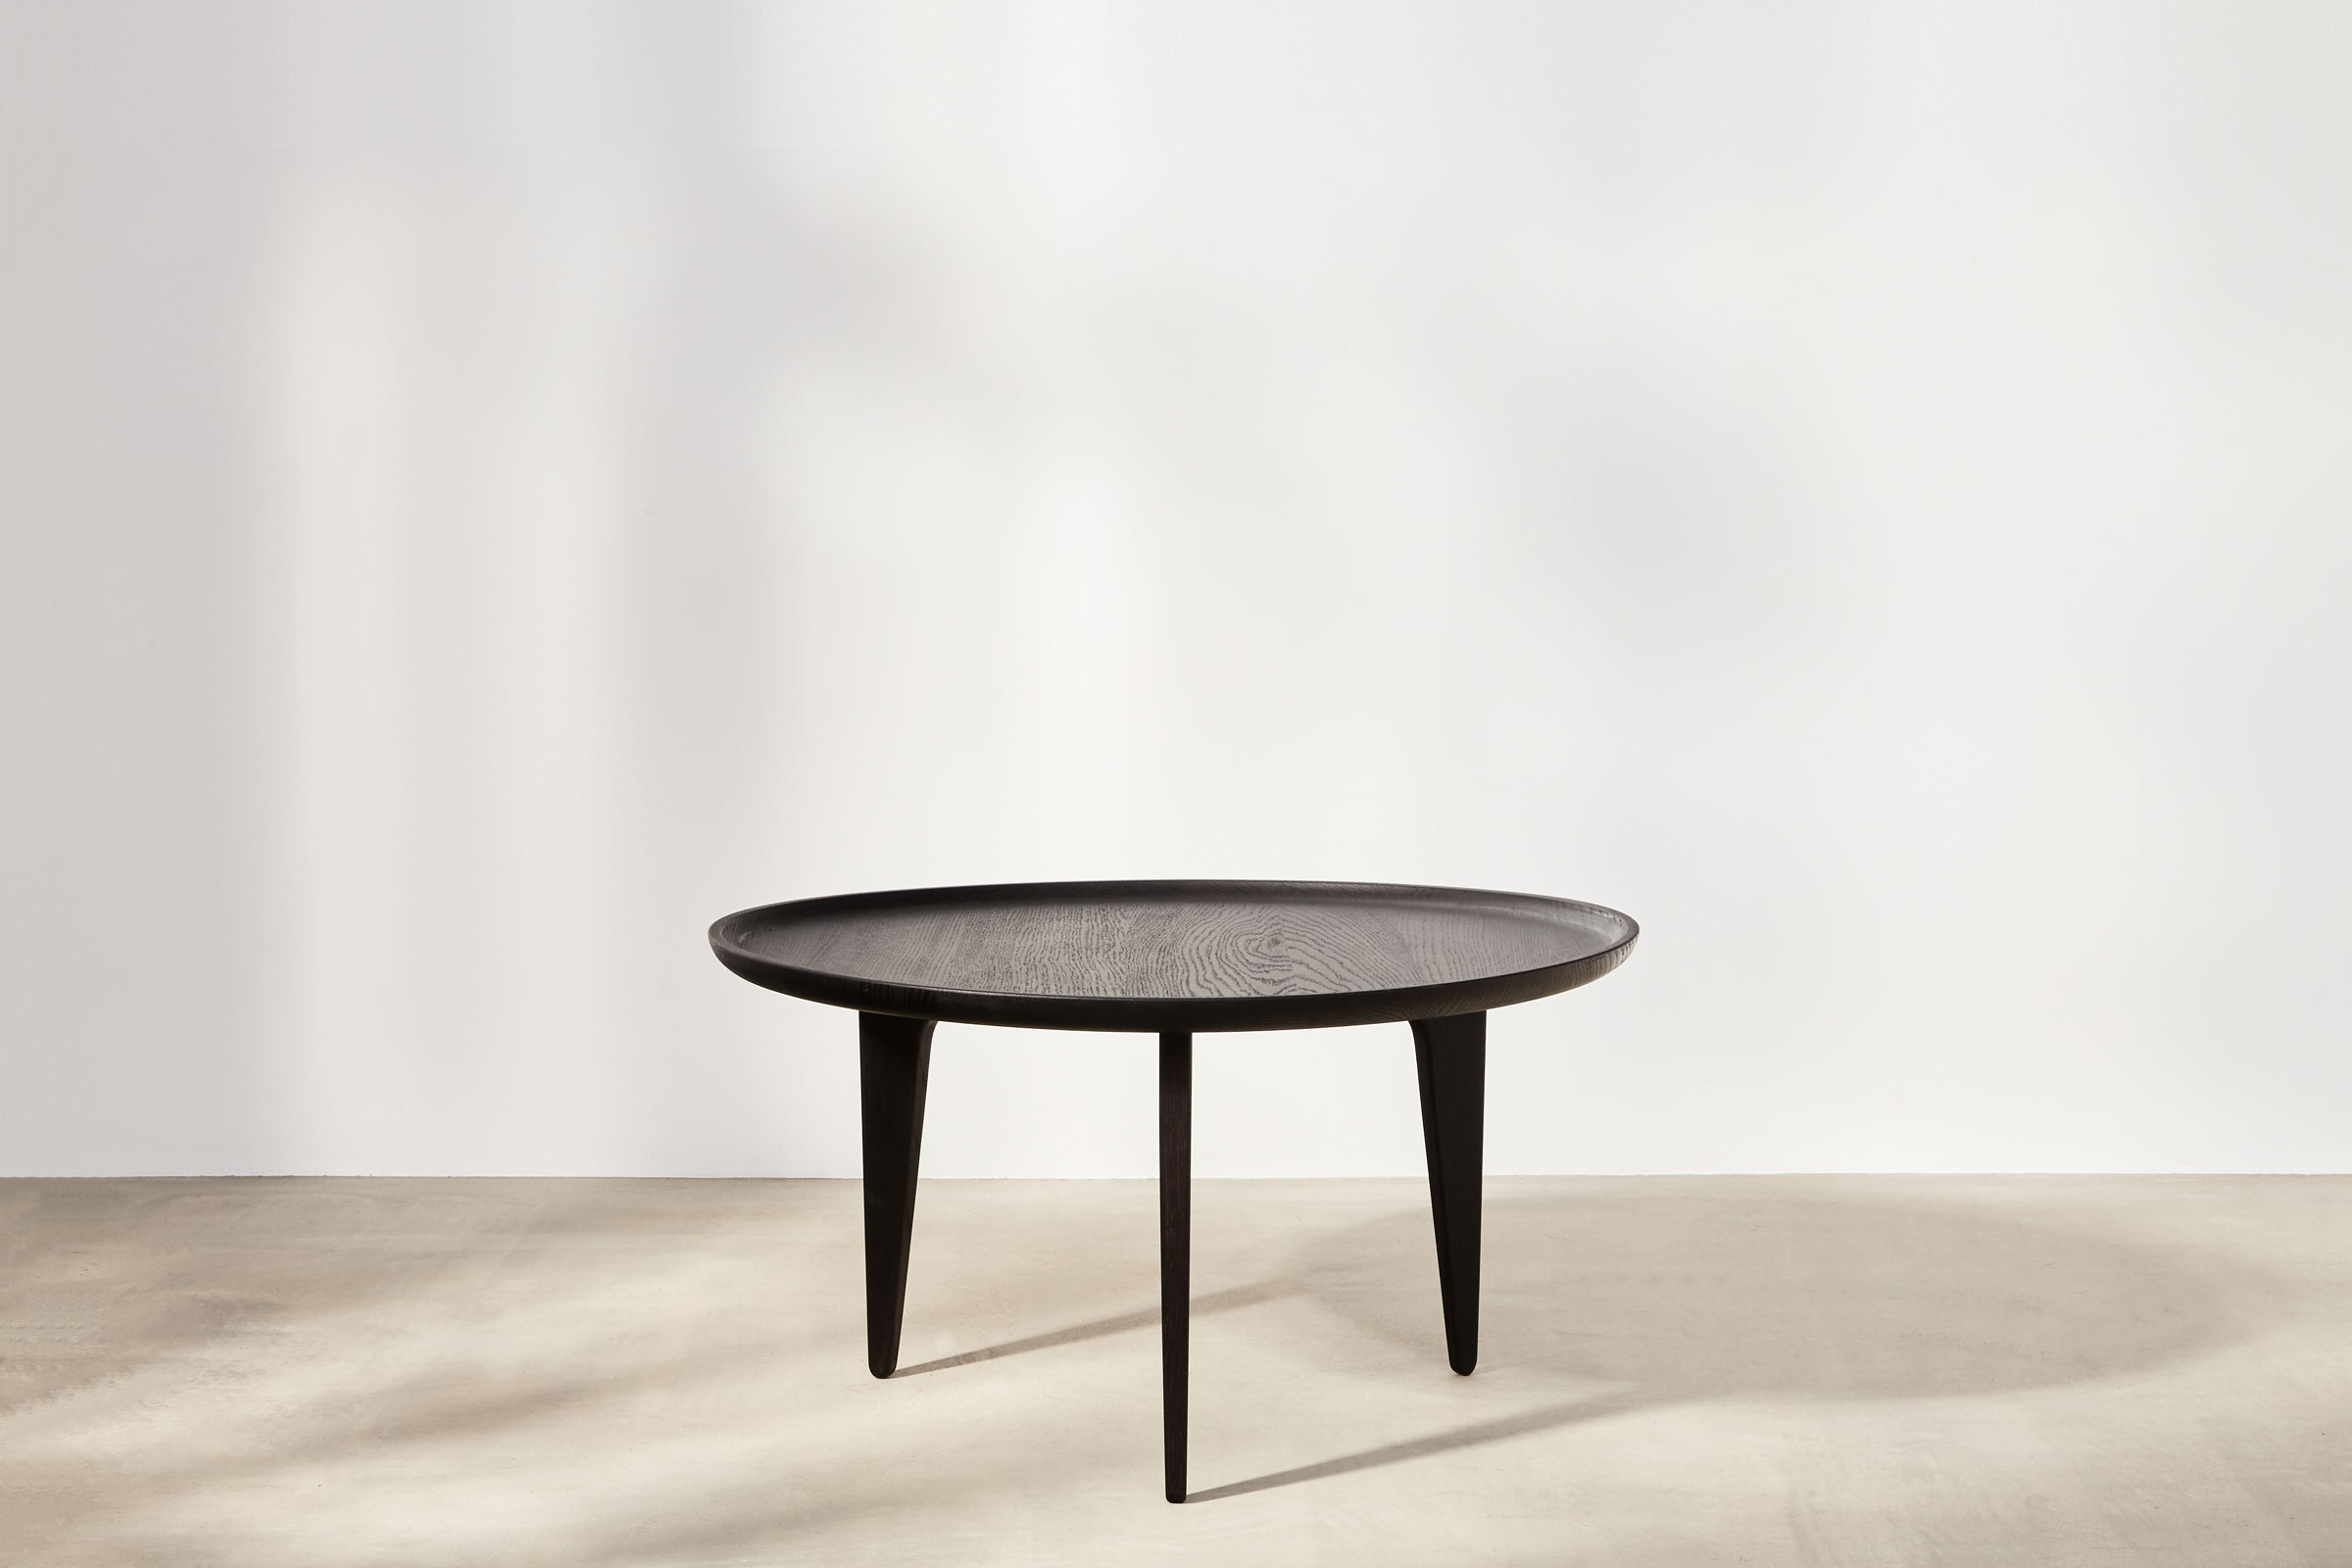 Widely Used Gleda Coffee Table – Handmade In Englandbenchmark Throughout Natural Wheel Coffee Tables (View 19 of 20)